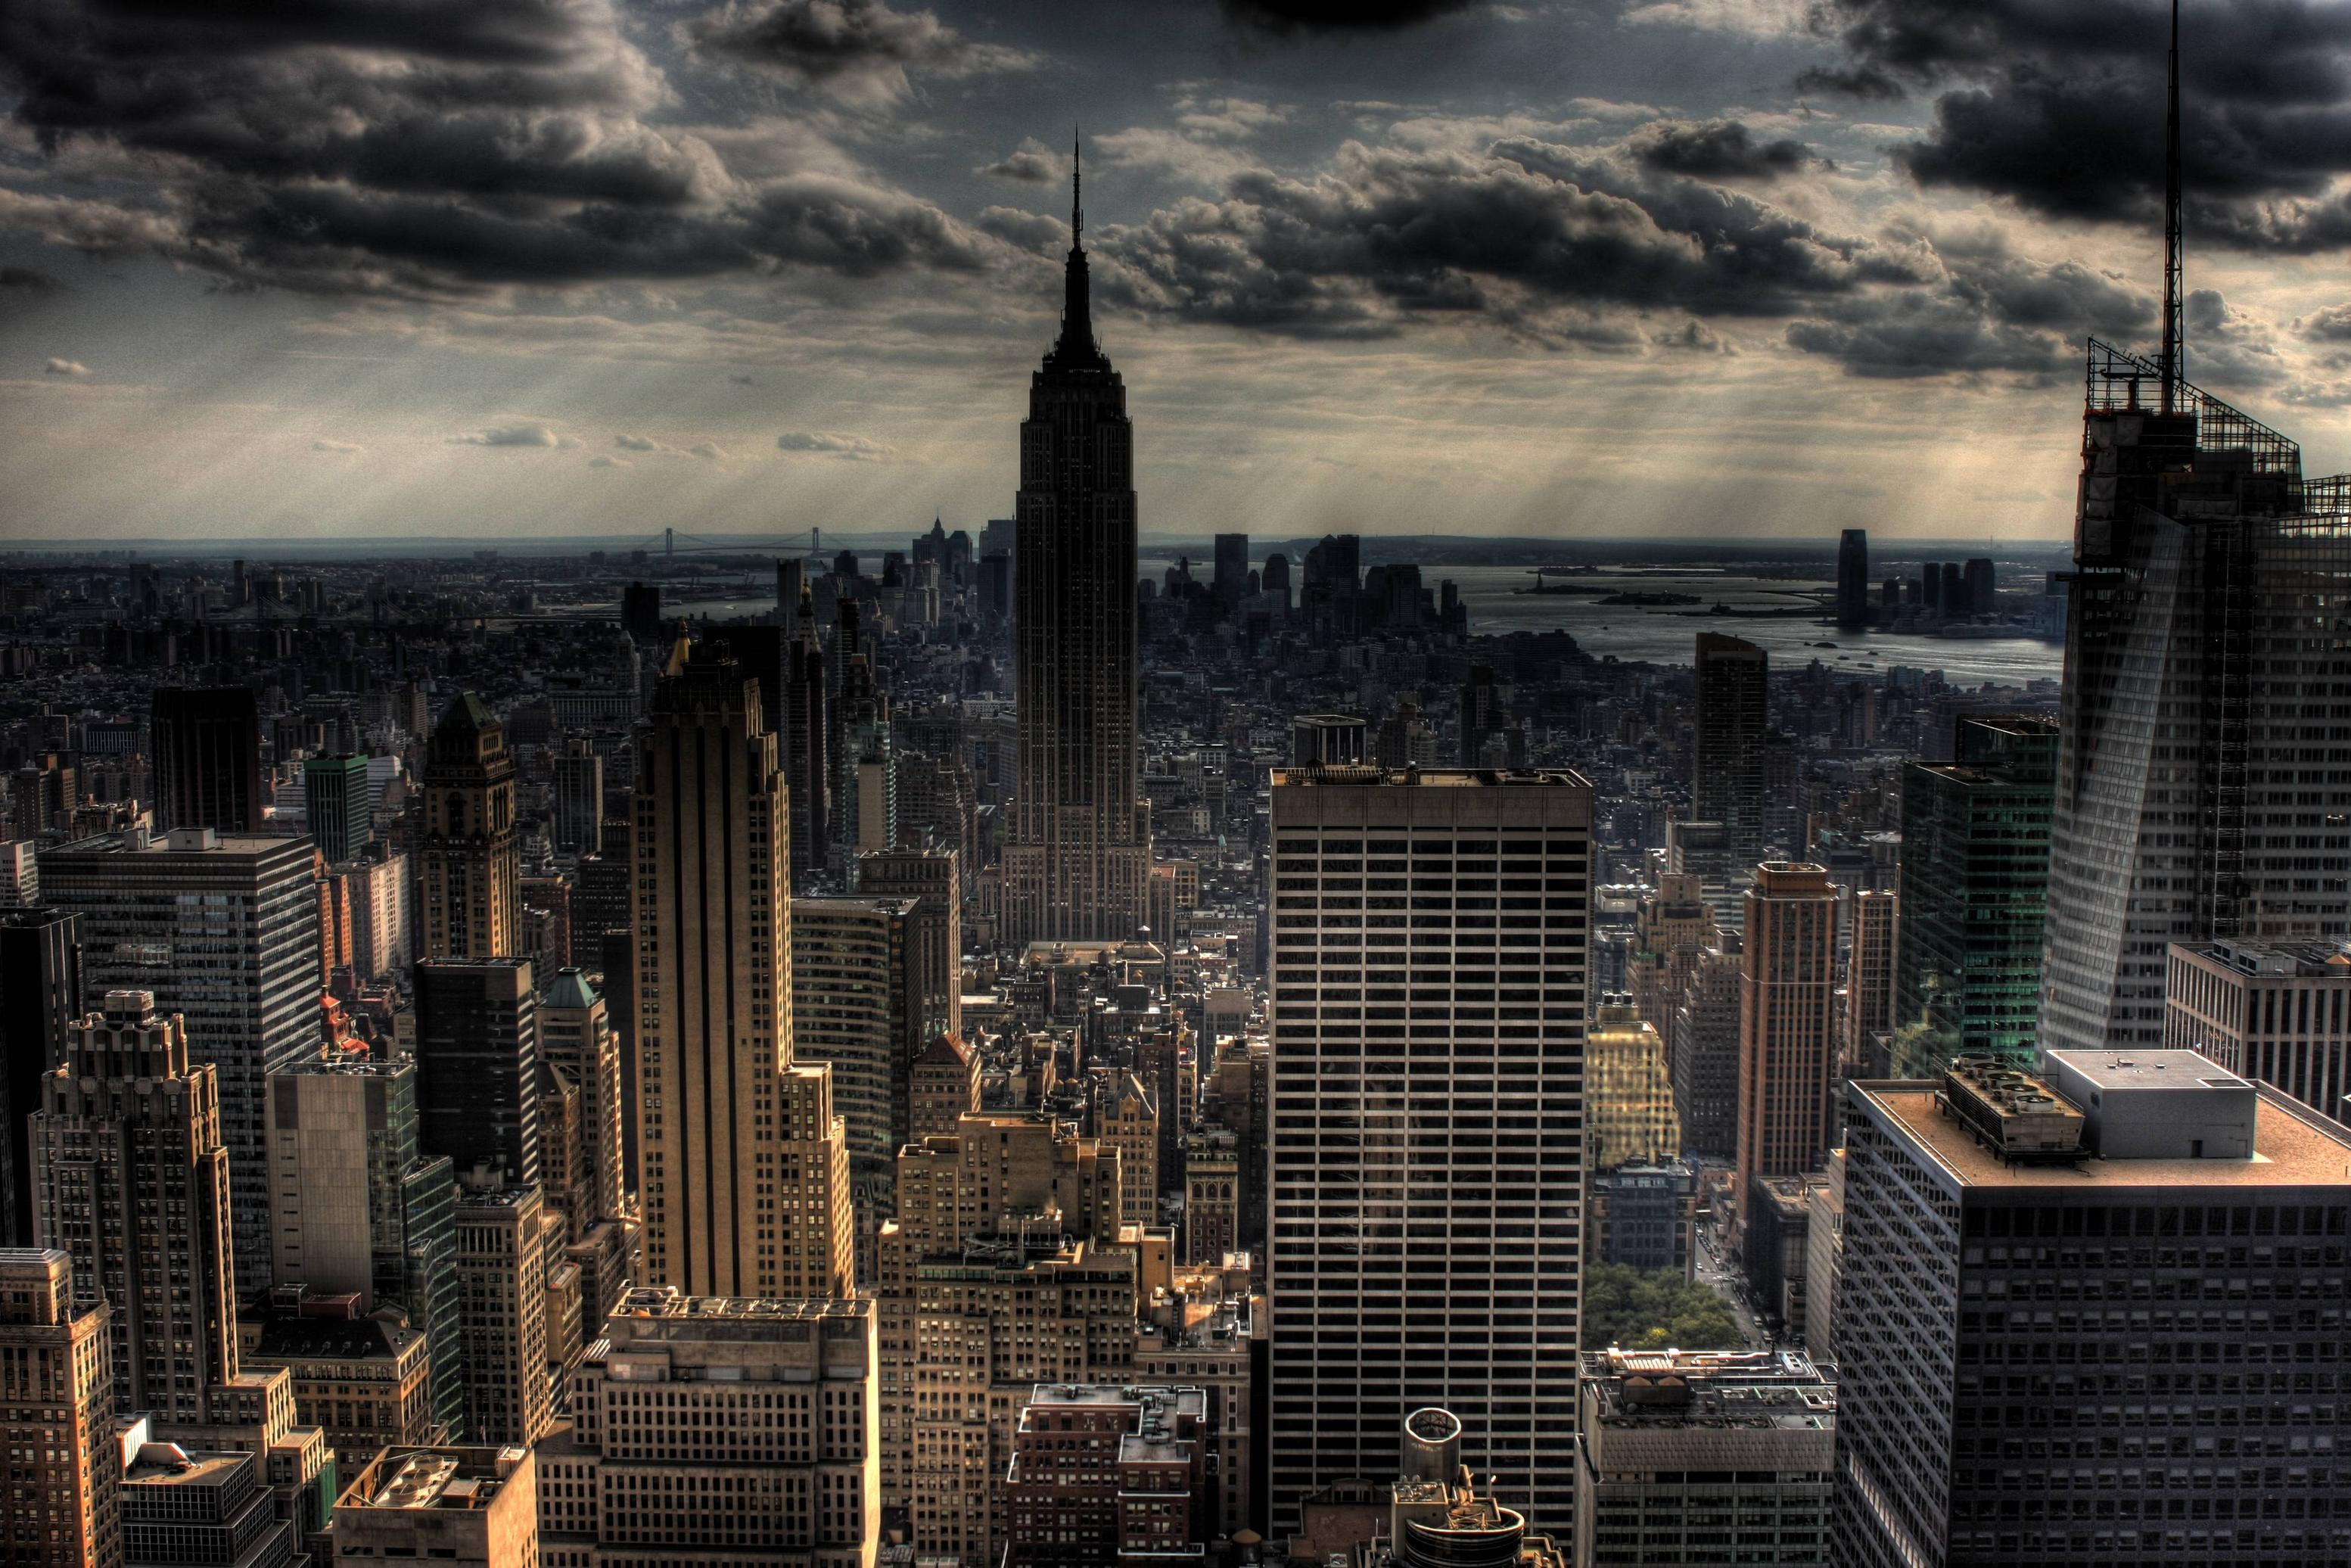 Download gotham city background new york city skyline hdr desktop ...